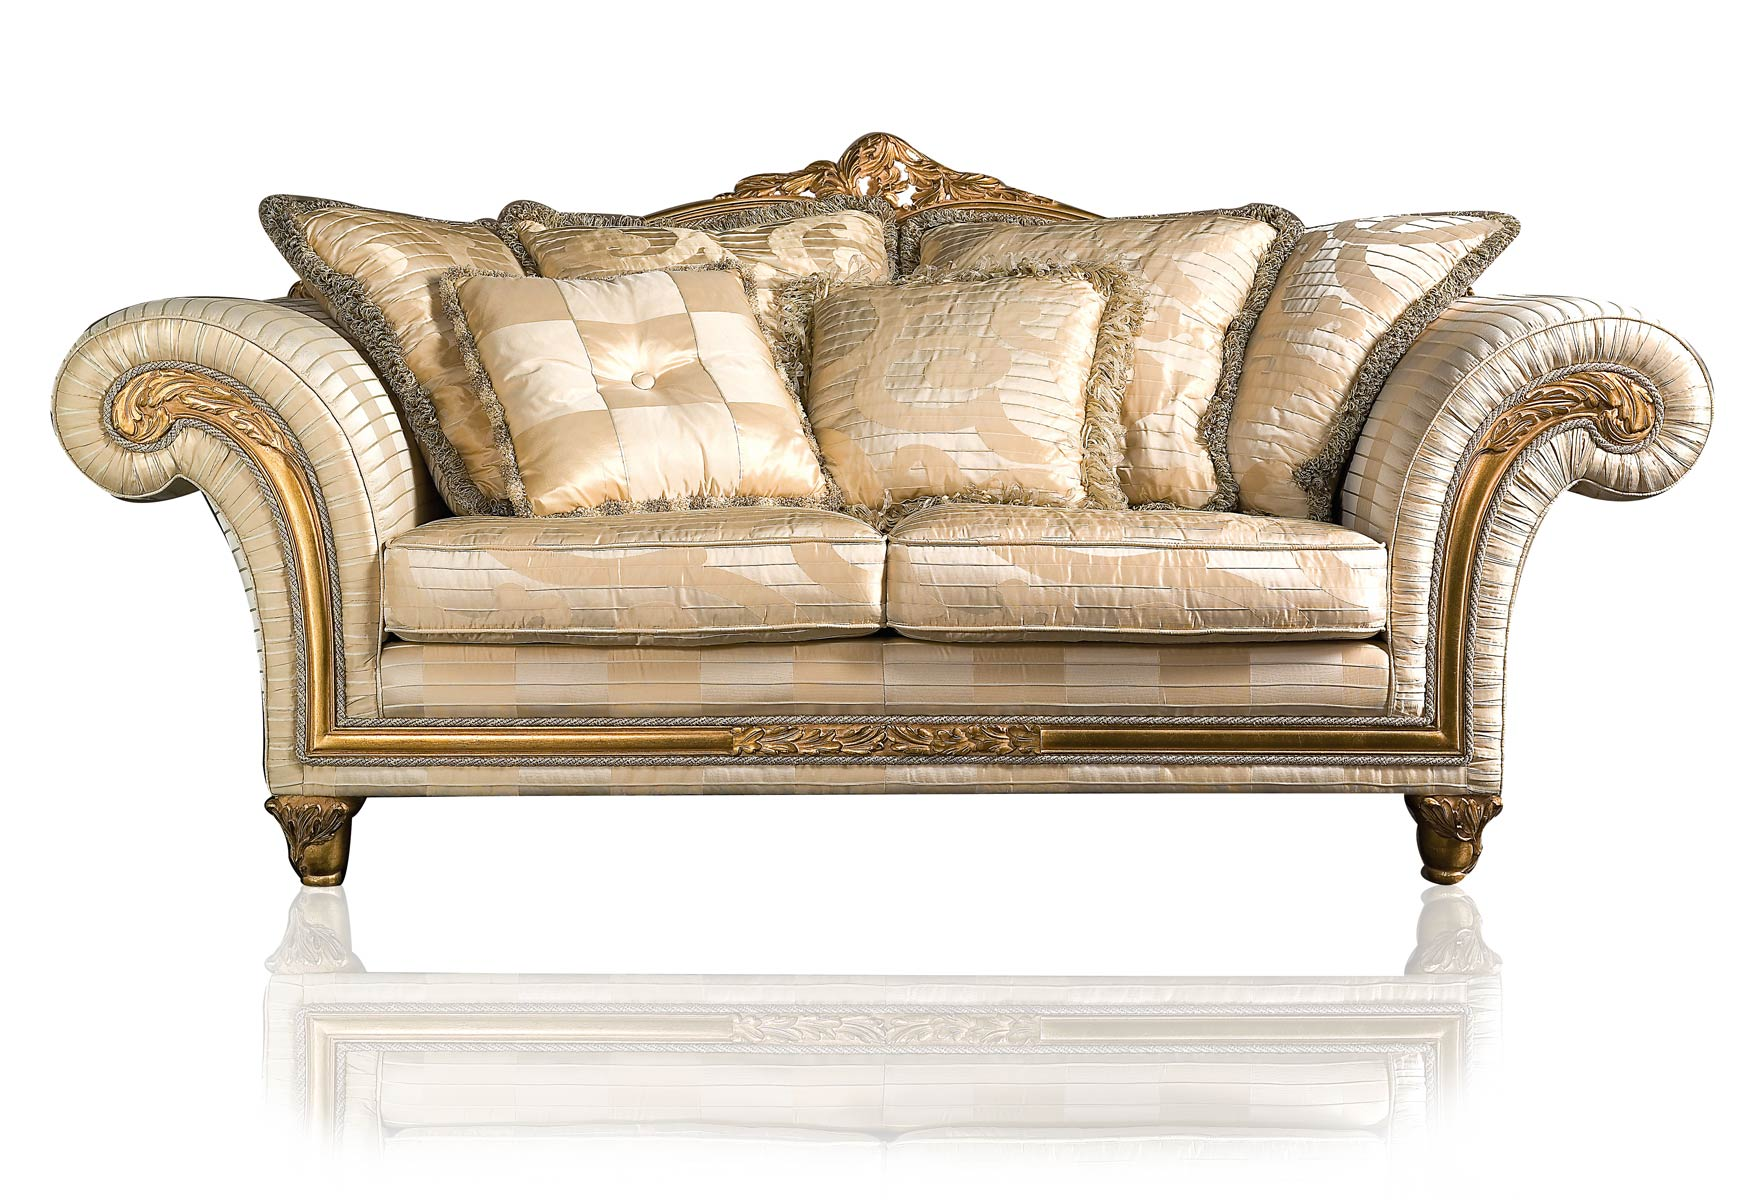 Luxury classic sofa and armchairs imperial by vimercati for Pictures of traditional furniture